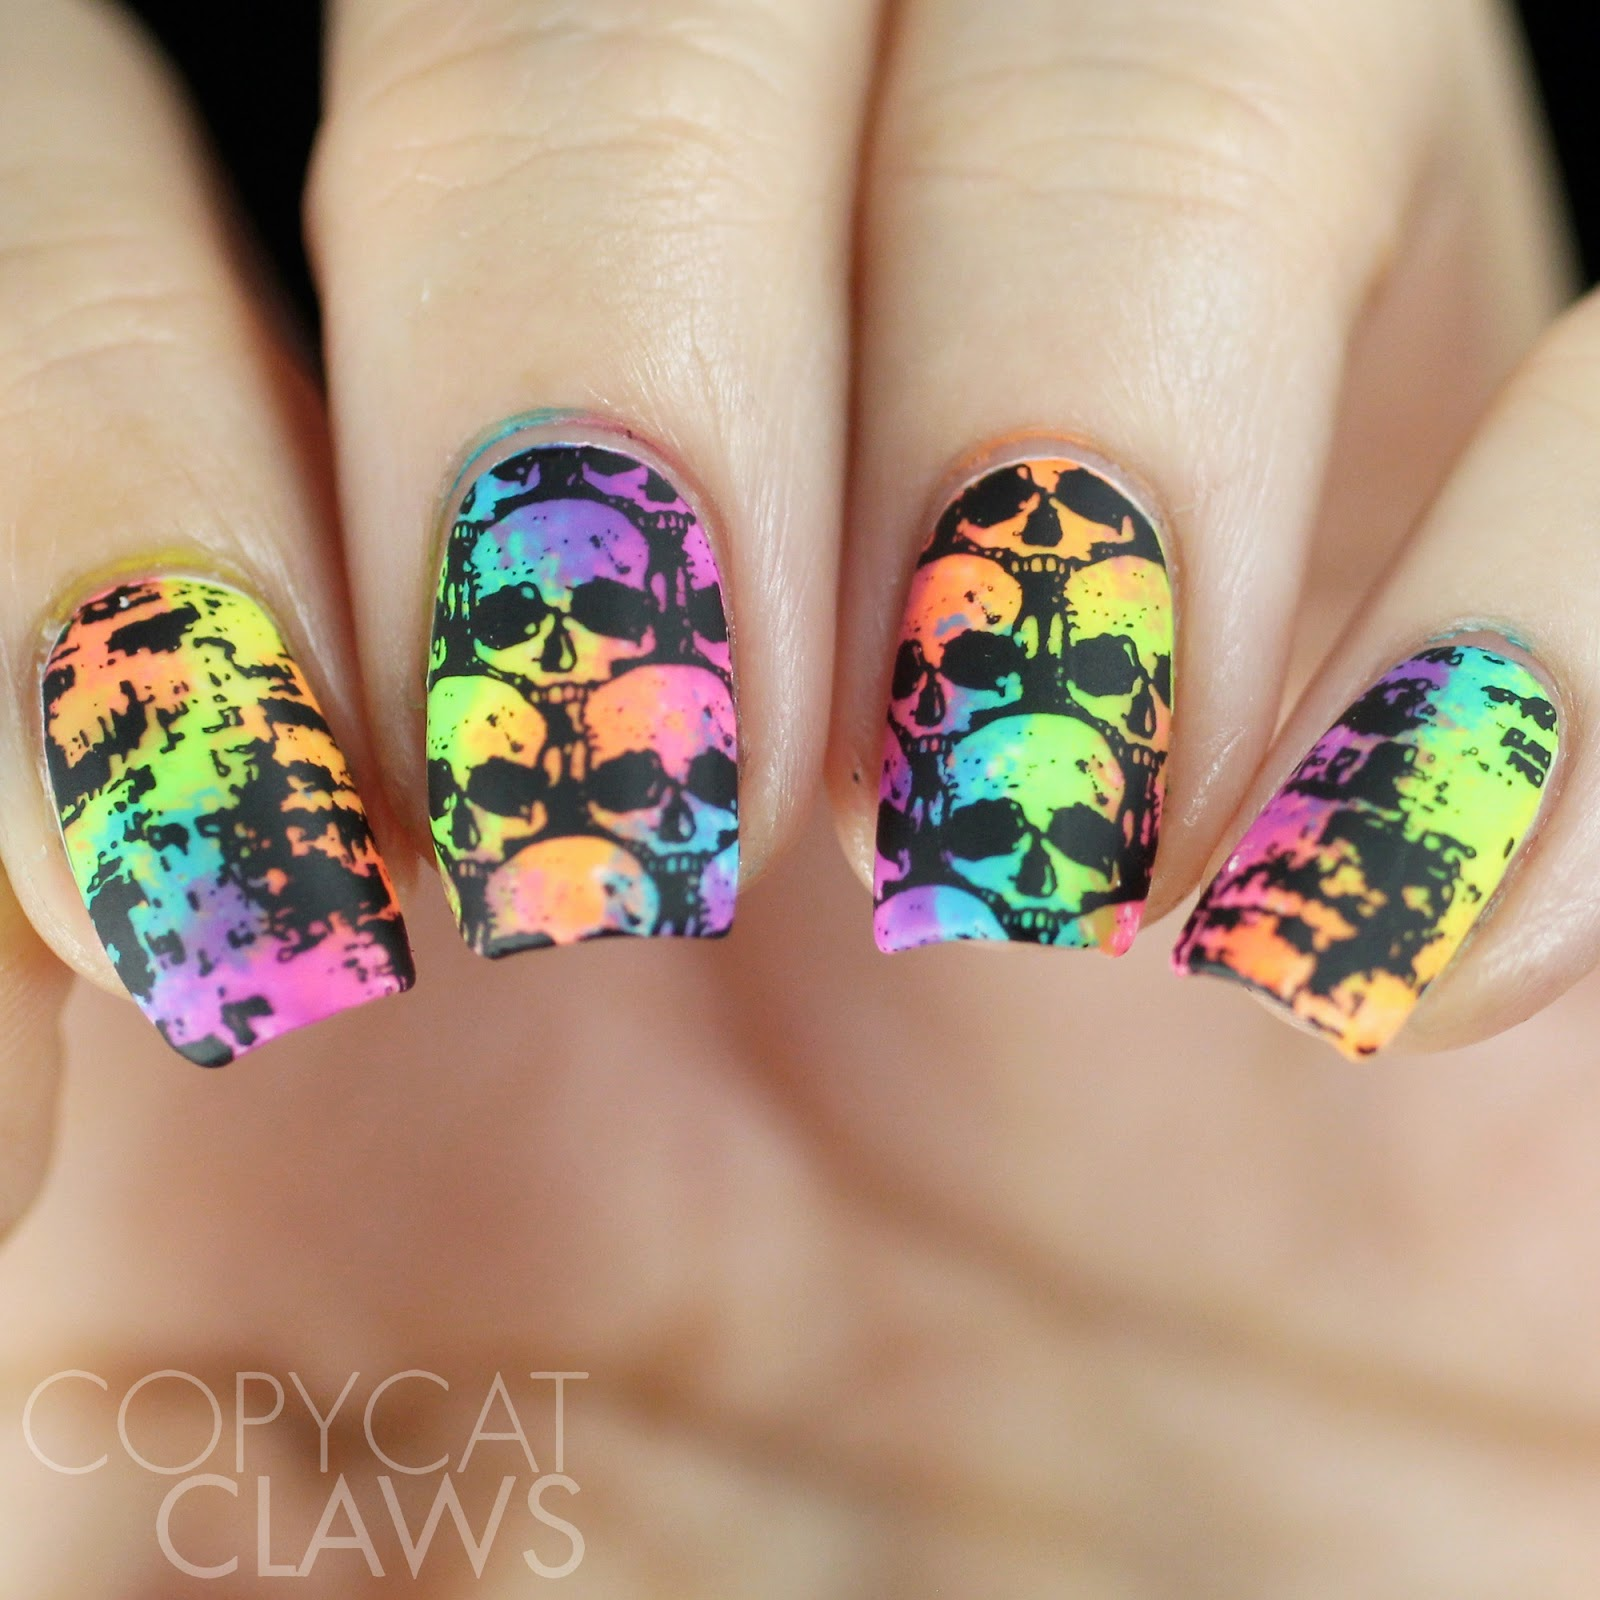 Copycat claws 26 great nail art ideas black and neon is awesome isnt it and for once my camera decided to actually show some of the brightness that this mani had in real life which for my camera is a prinsesfo Gallery